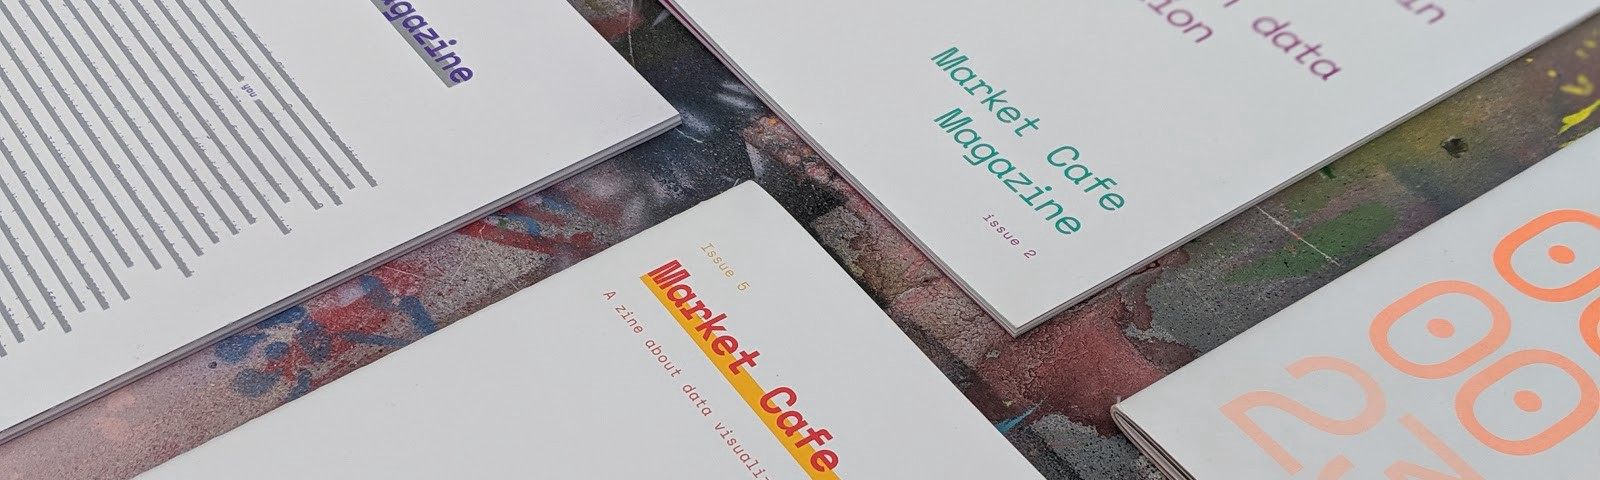 The five covers of Market Cafe Magazine